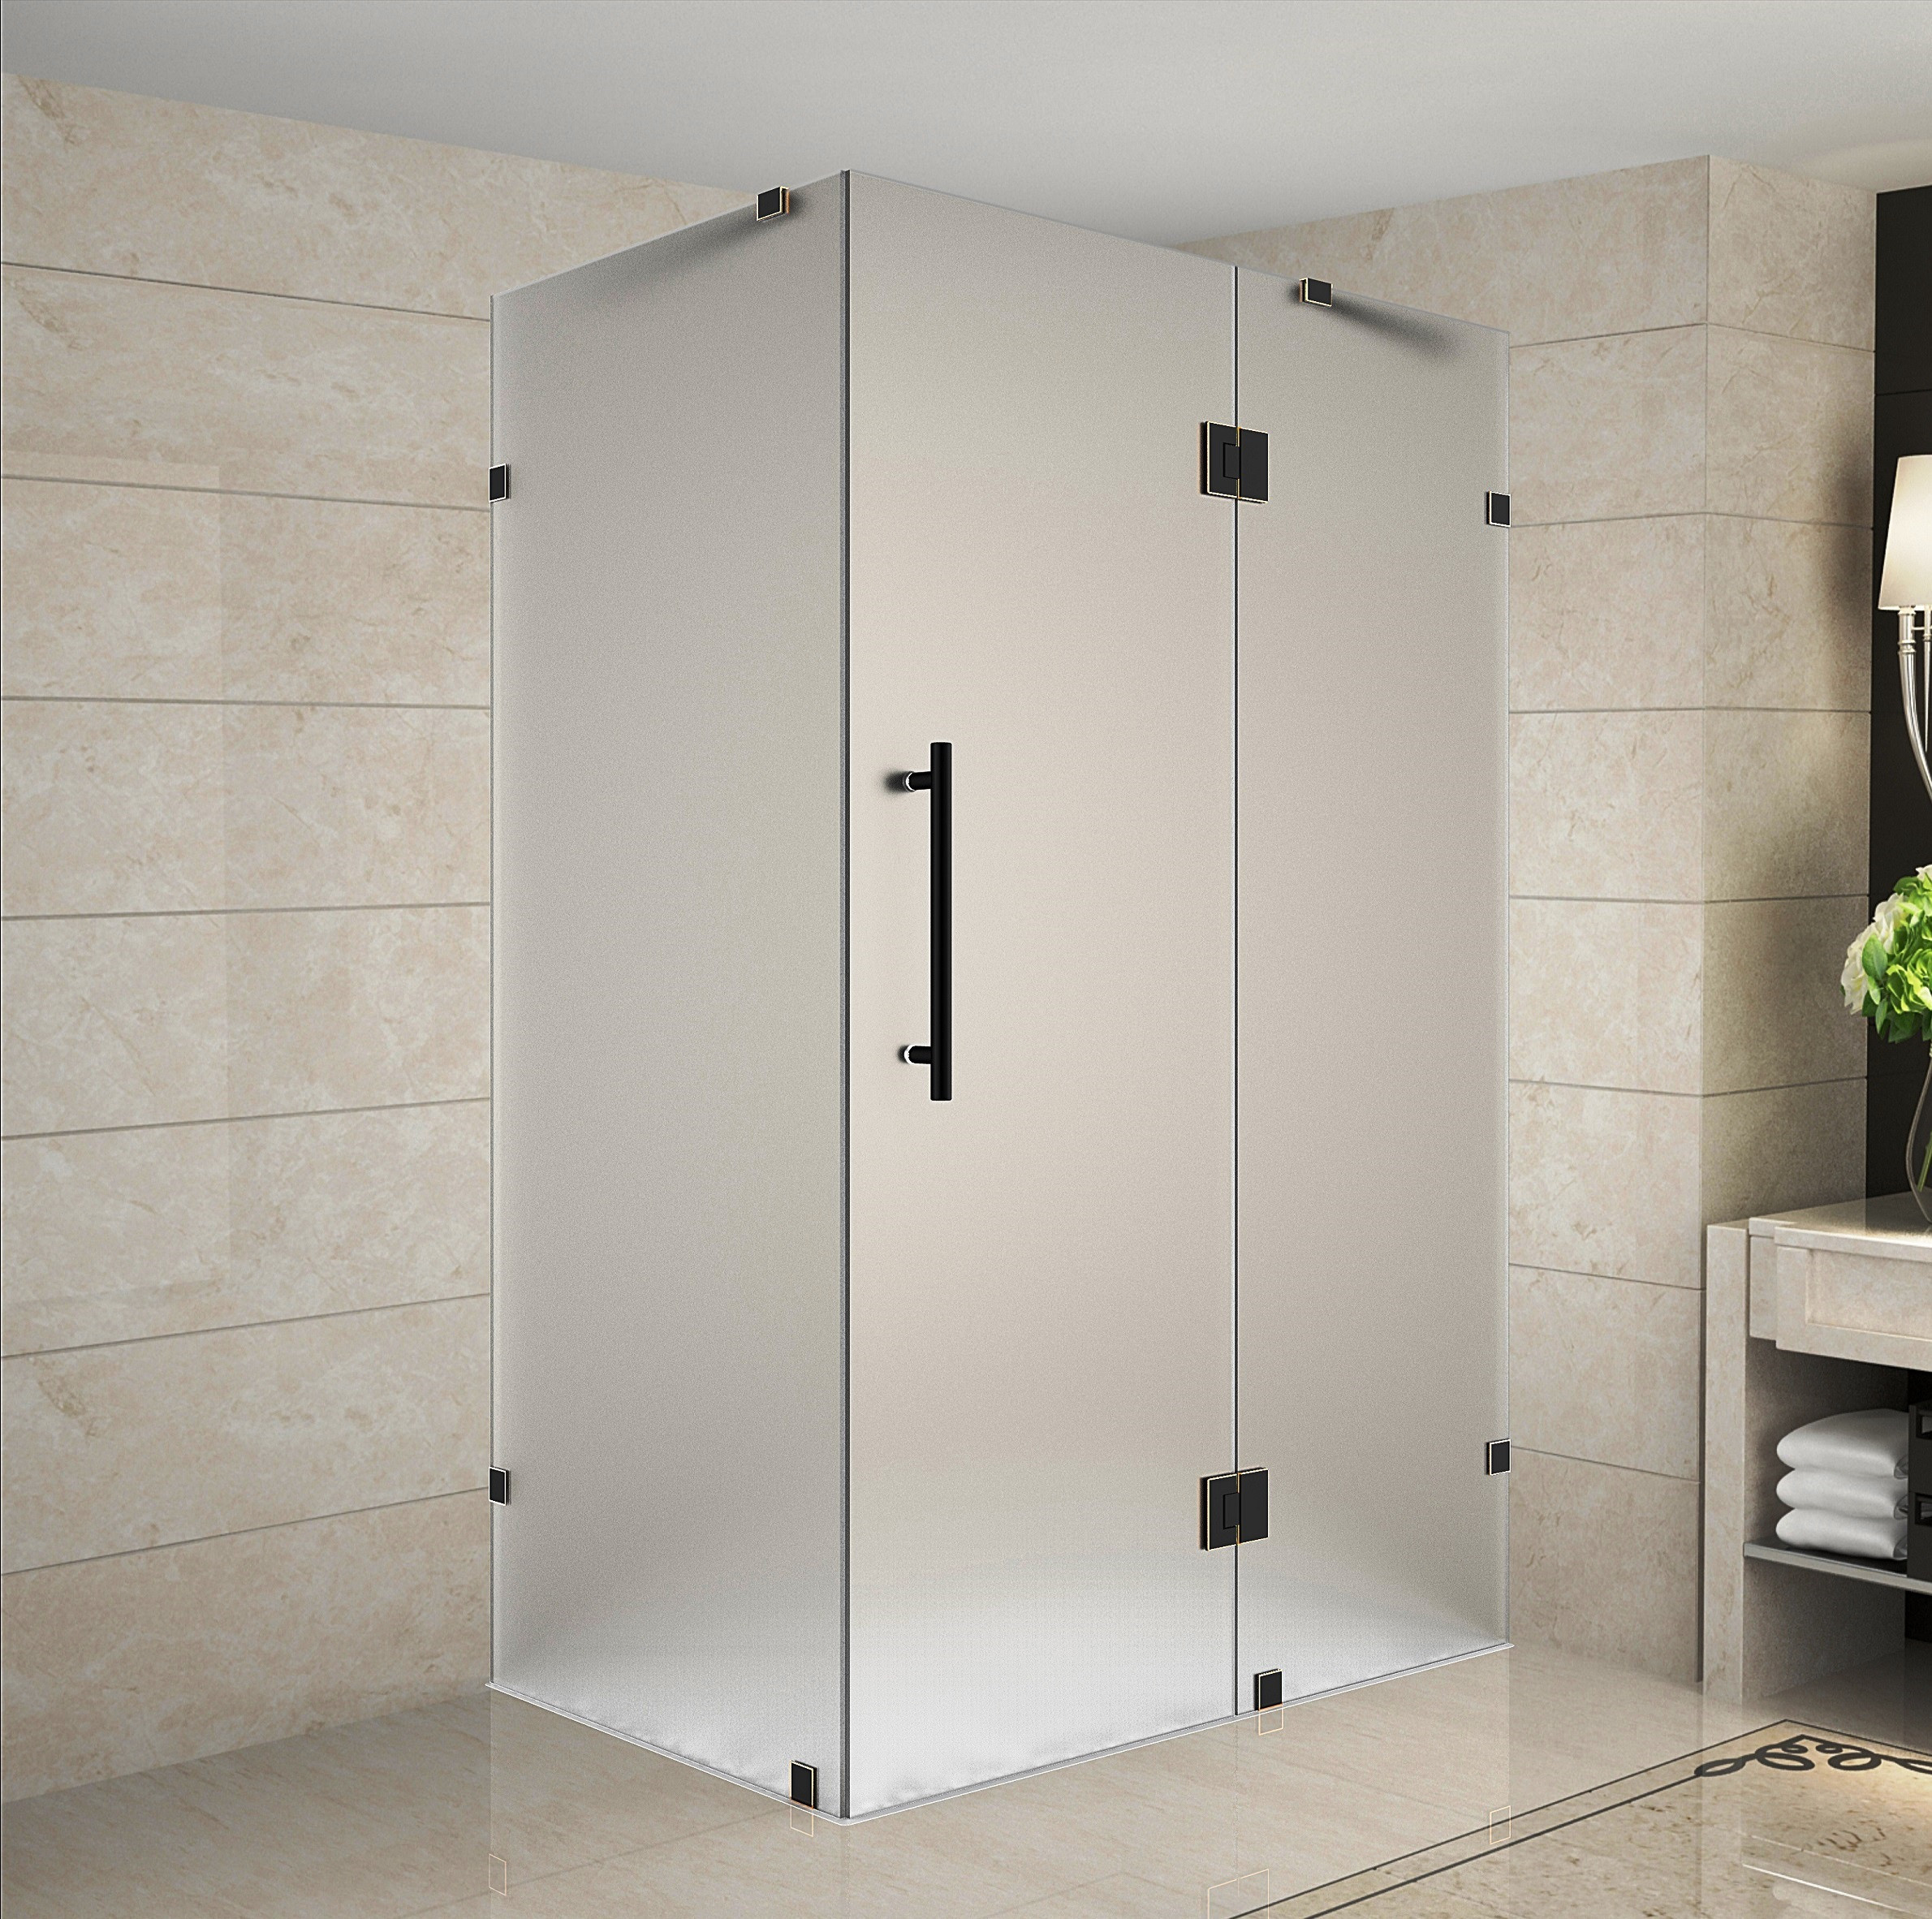 Aston Global SEN987F-ORB-3334-10 Frameless Frosted Glass Shower Enclosure, In Oil Rubbed Bronze